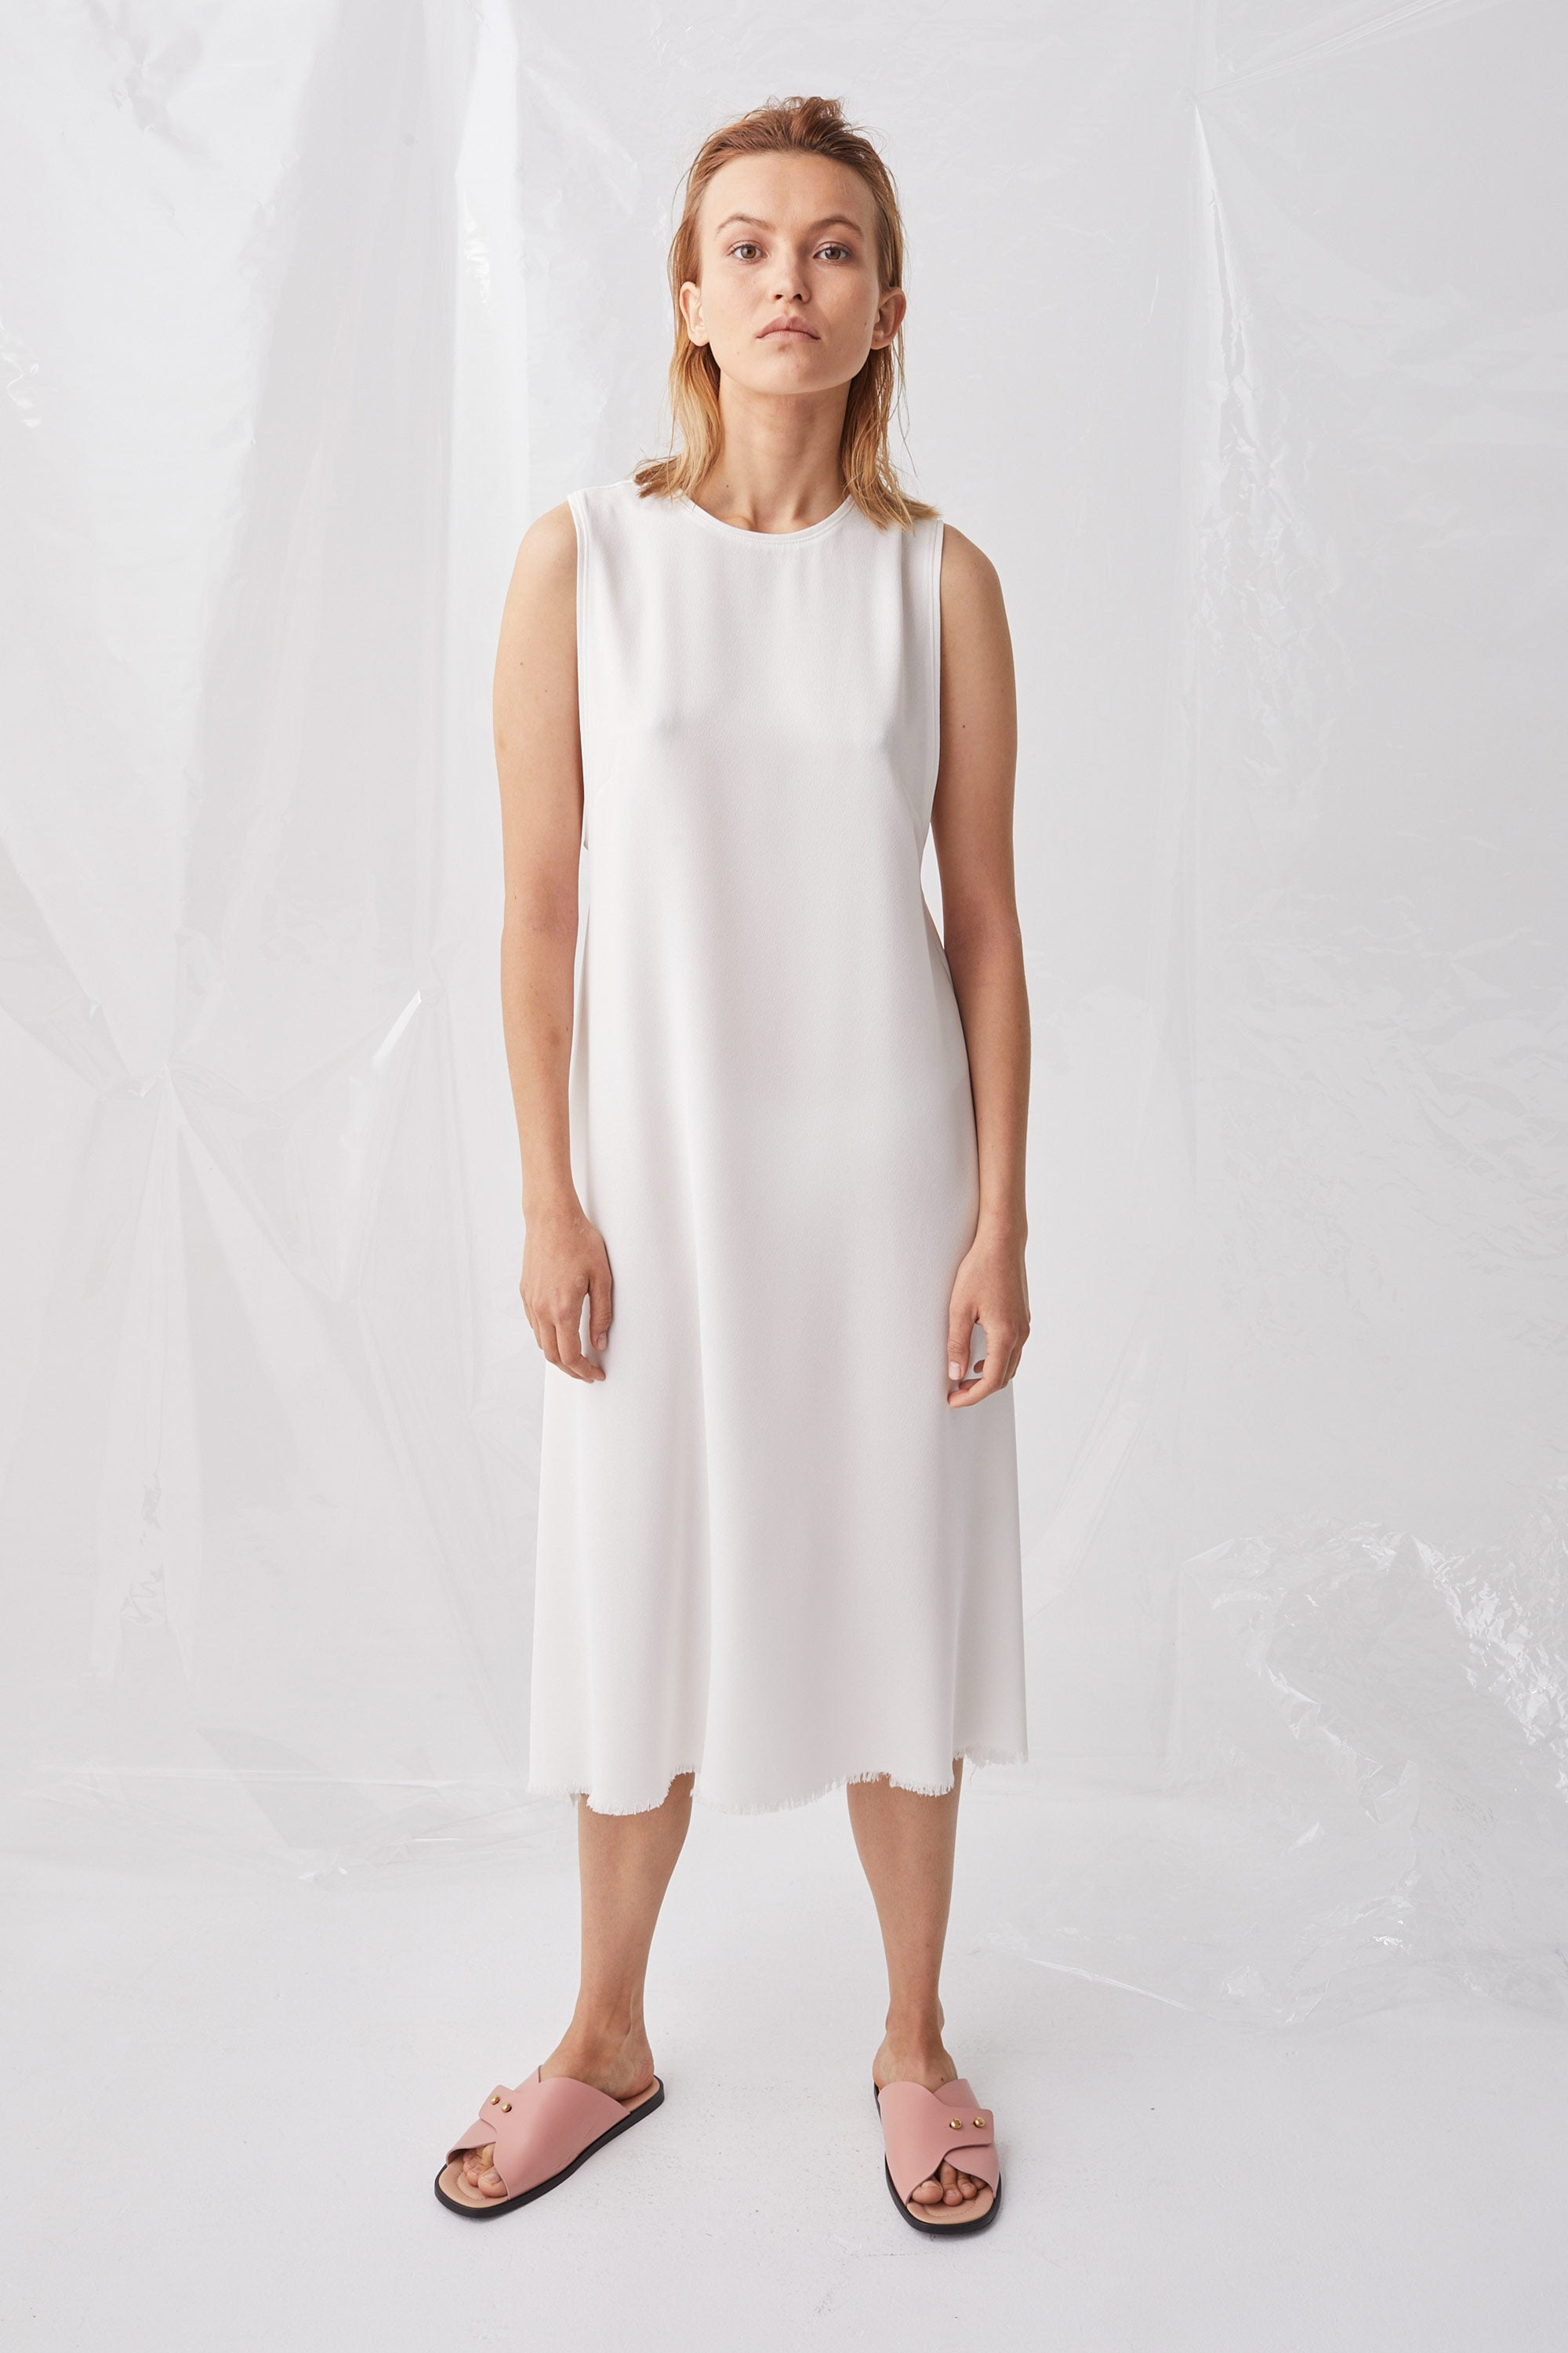 Ricochet NZ Fashion Designer Clothing Boutique SS18 Soma Dress White Crepe Column Fluted Made in NZ